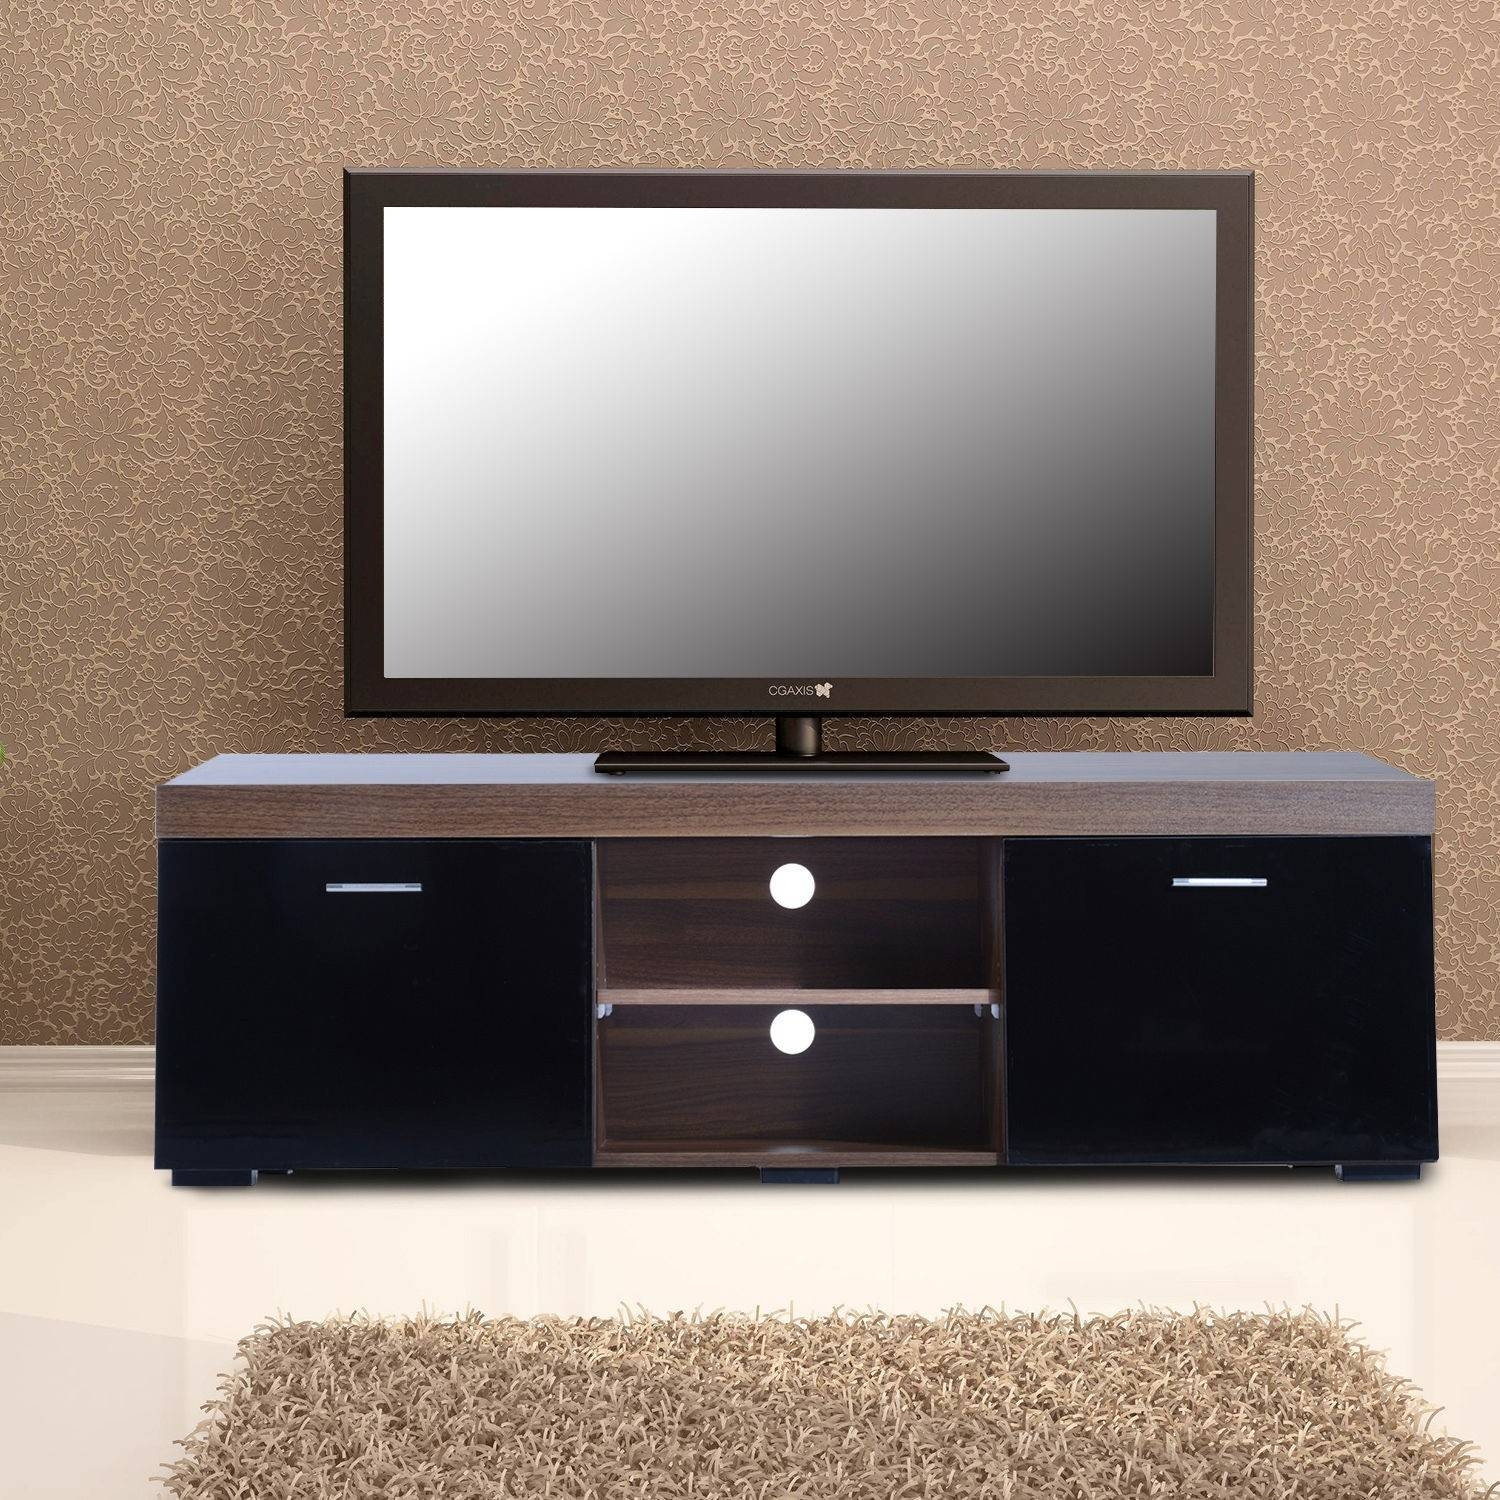 Homcom Tv Stand Storage Cabinet W/ Shelves Walnut/black |aosom.co (View 12 of 15)